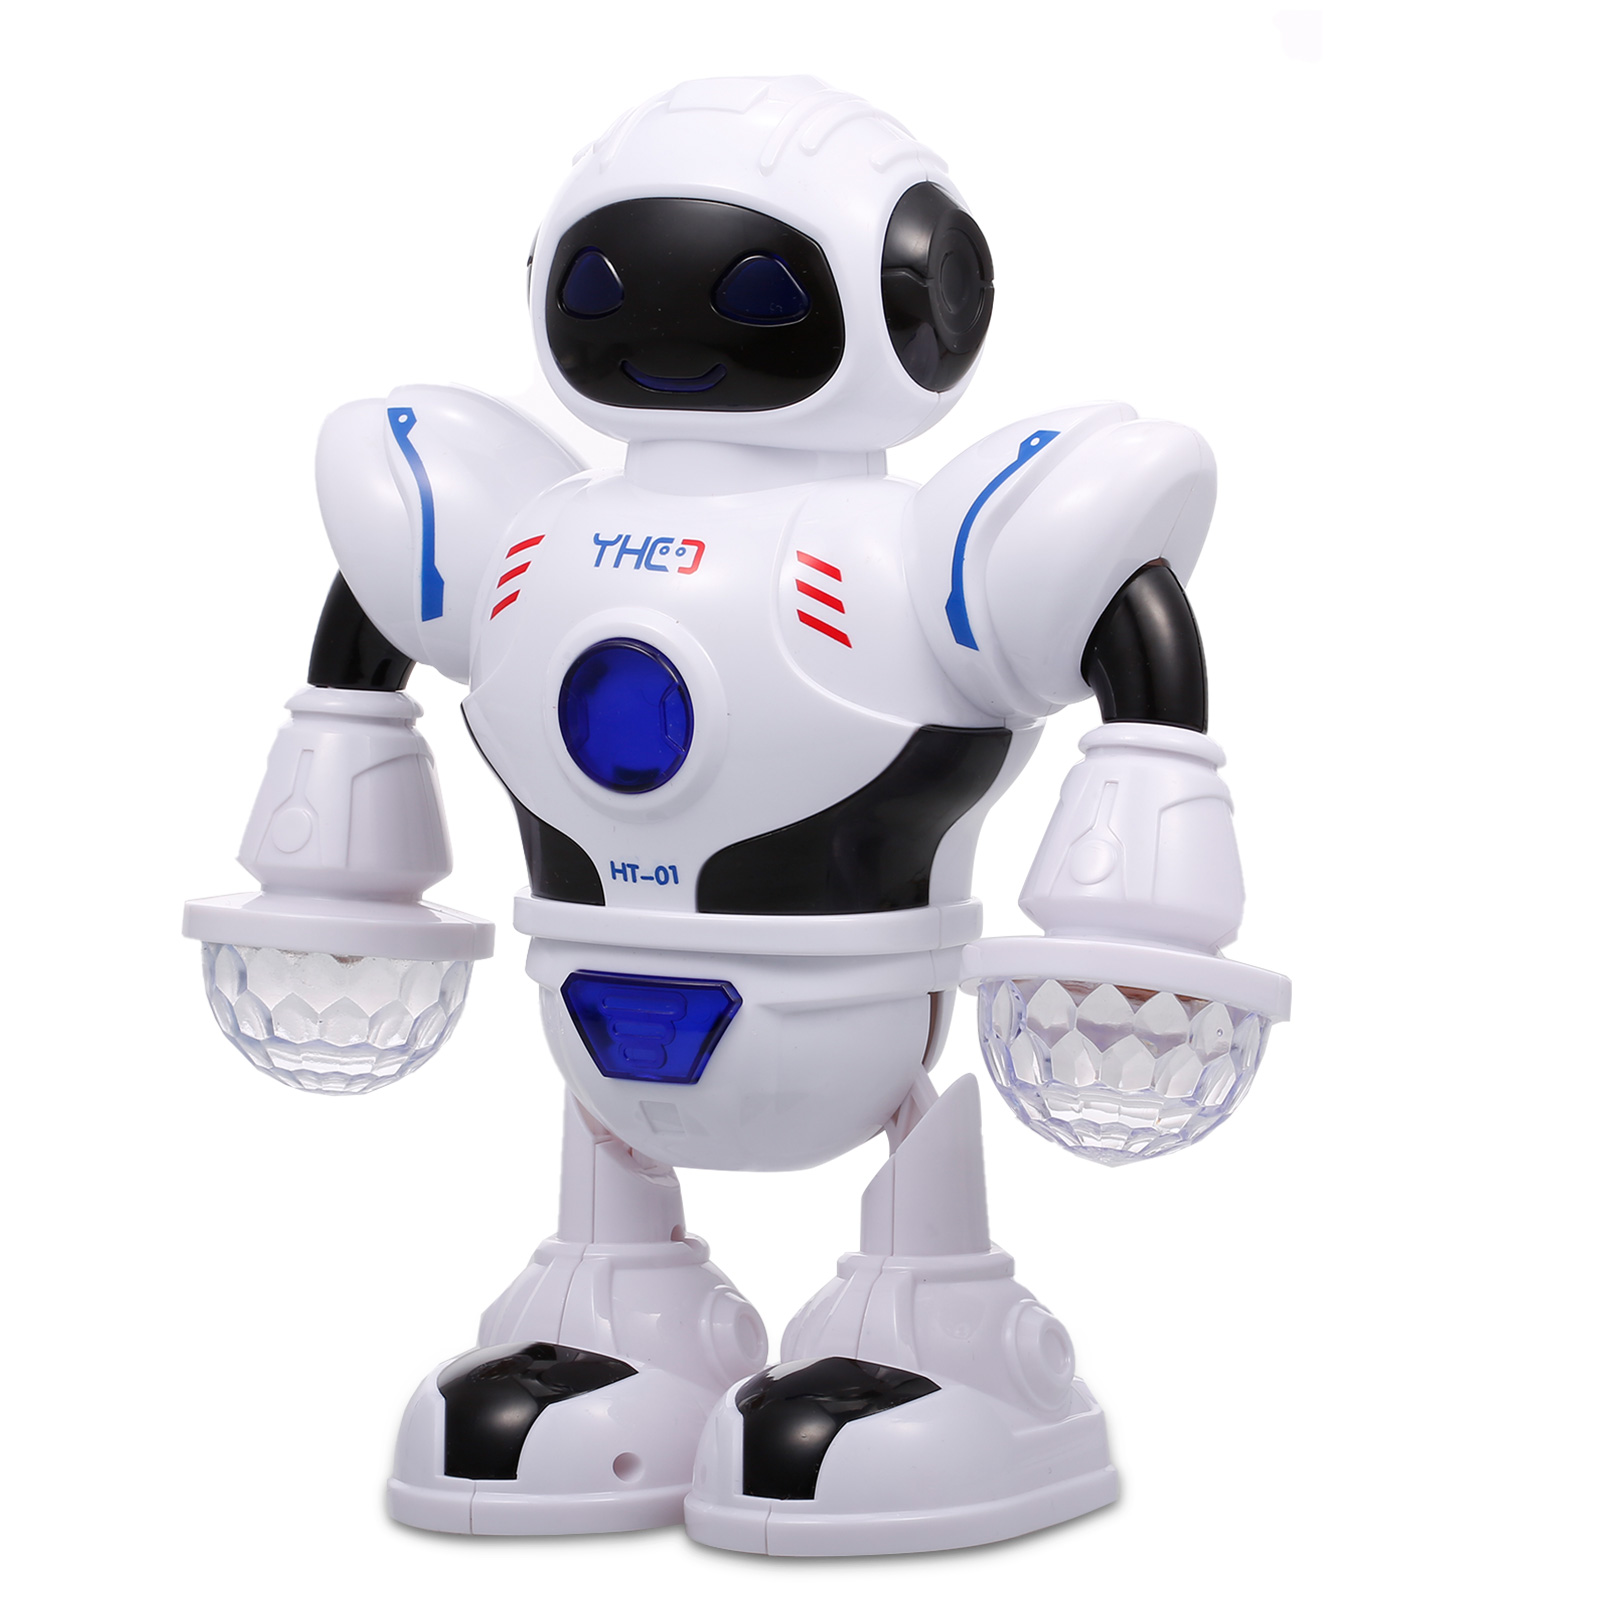 MARUSTAR RC Robot Toy,Remote Control Robot for Kids,Cute Appearance,Shine Eyes,360 Rotation Walking,Dacing,Great Gift for Kids Boys Girls